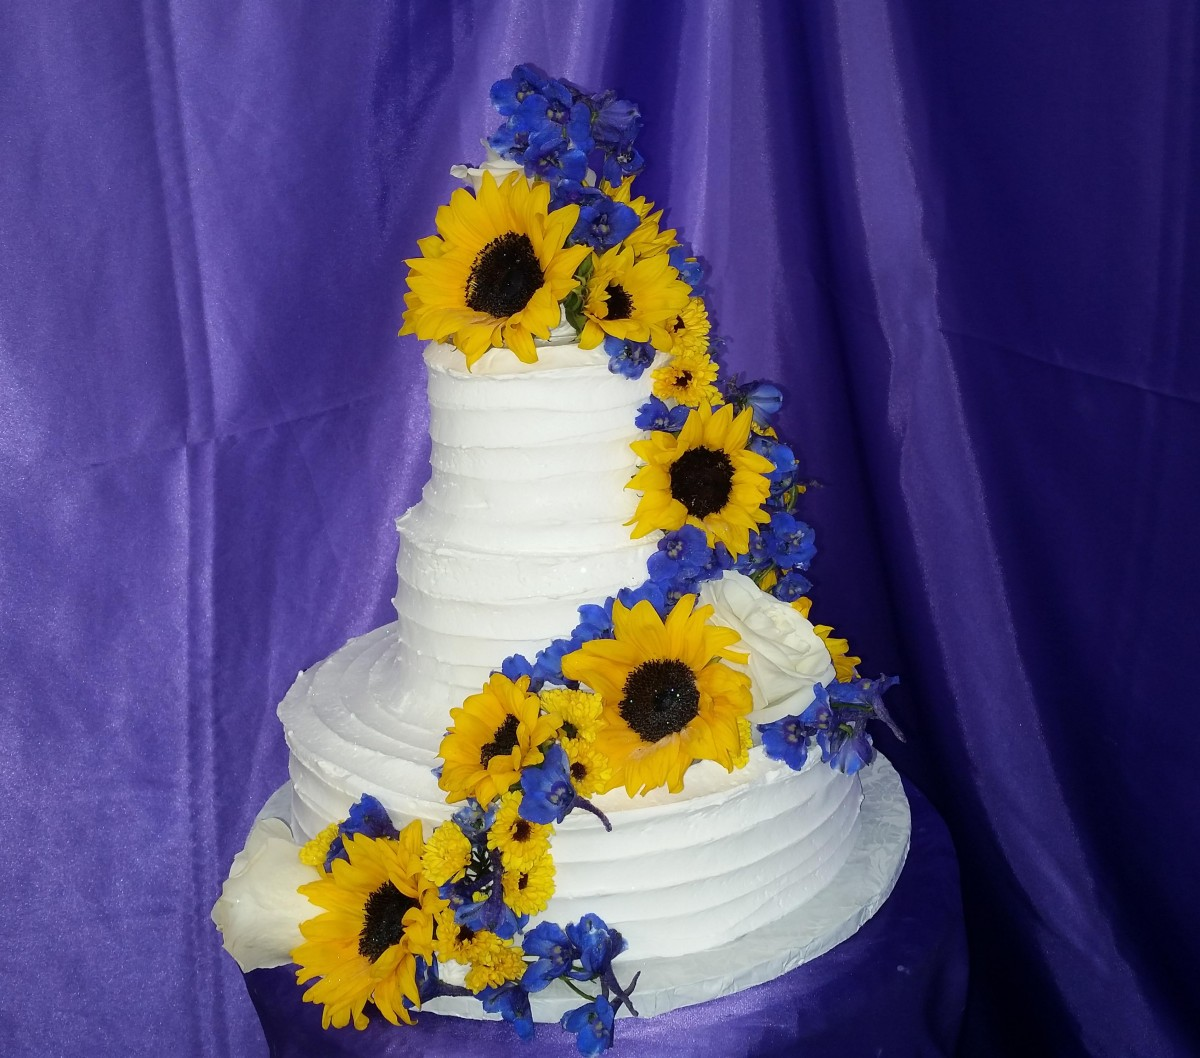 Sunflower Wedding Cake Ideas: Sunflower Wedding Cake